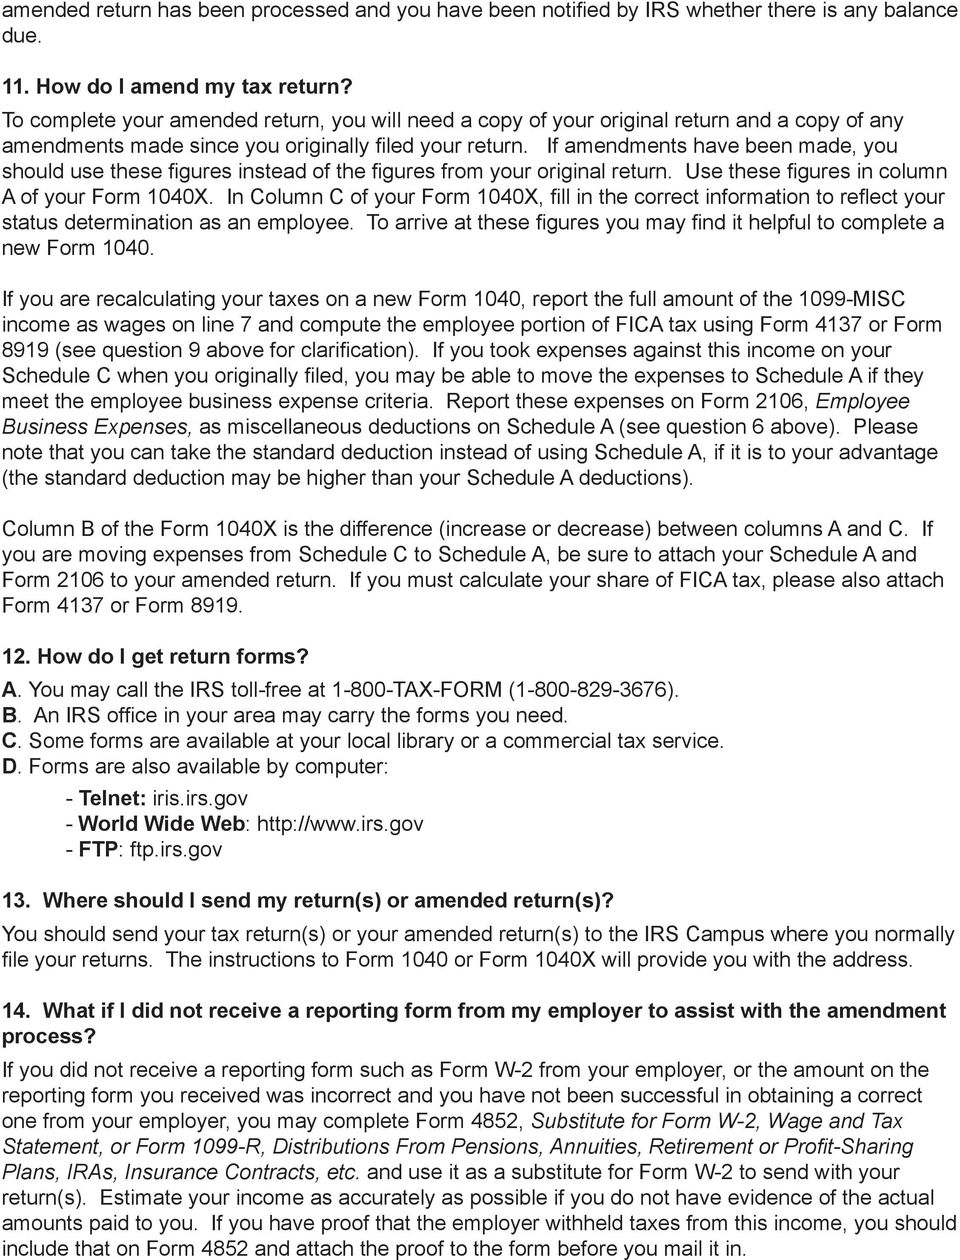 IRS. Commonly Asked Questions When IRS Determines Your Work Status ...